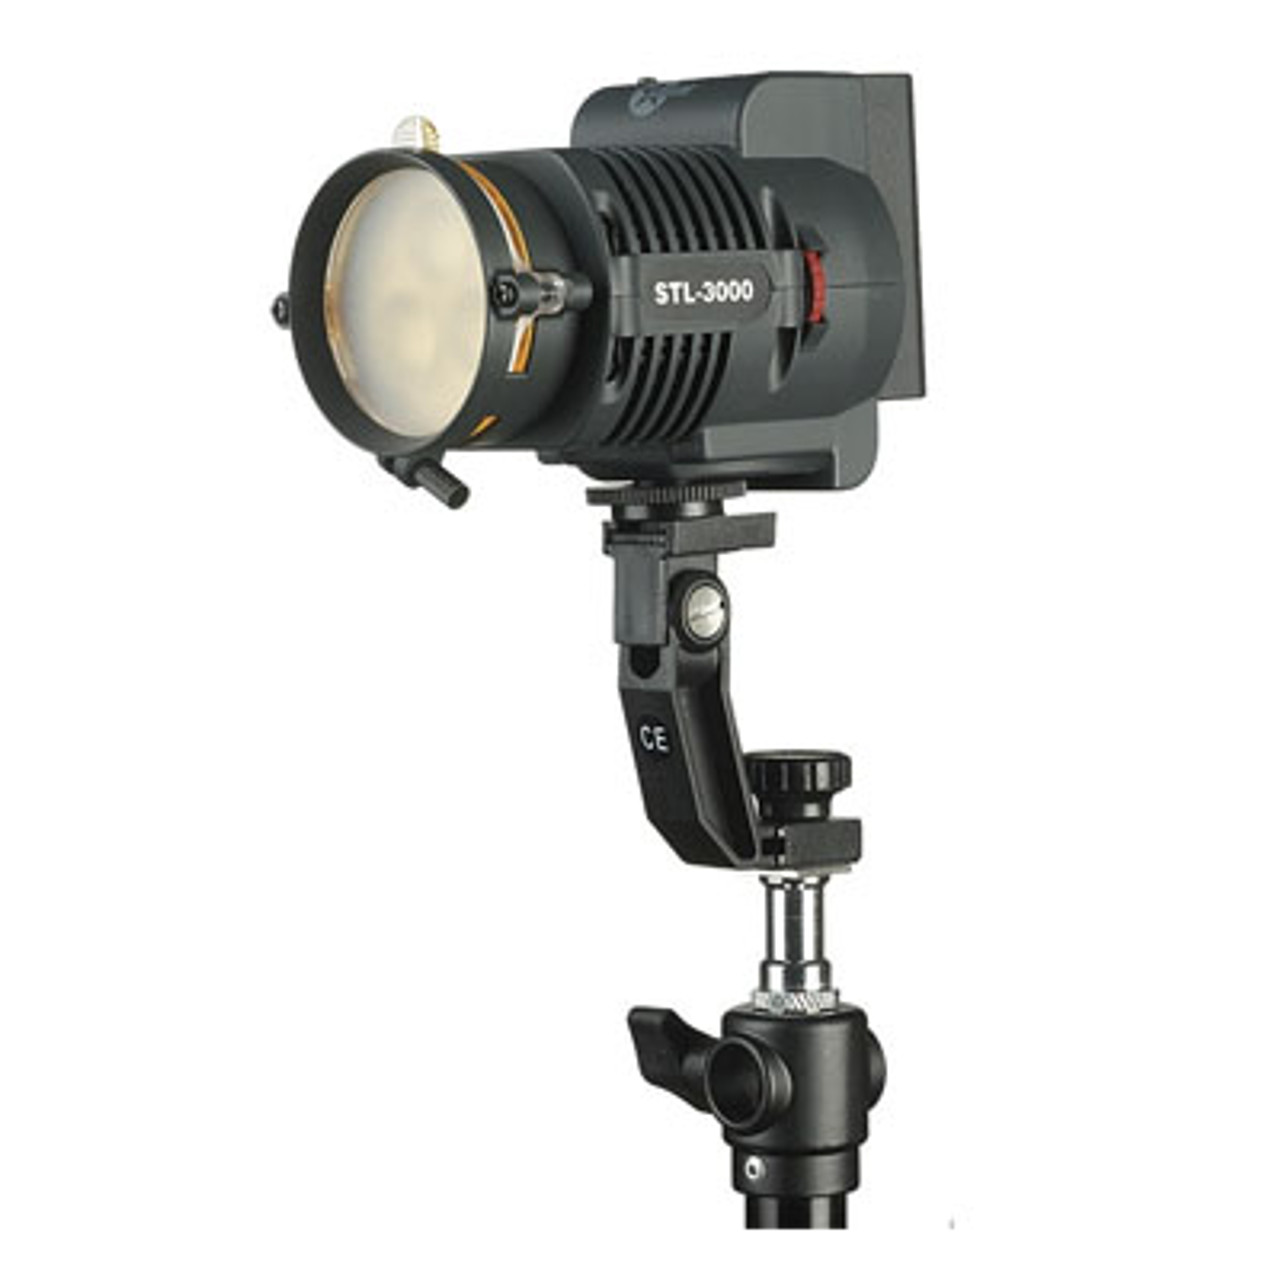 STL-3000 Professional Dimmable Bright White